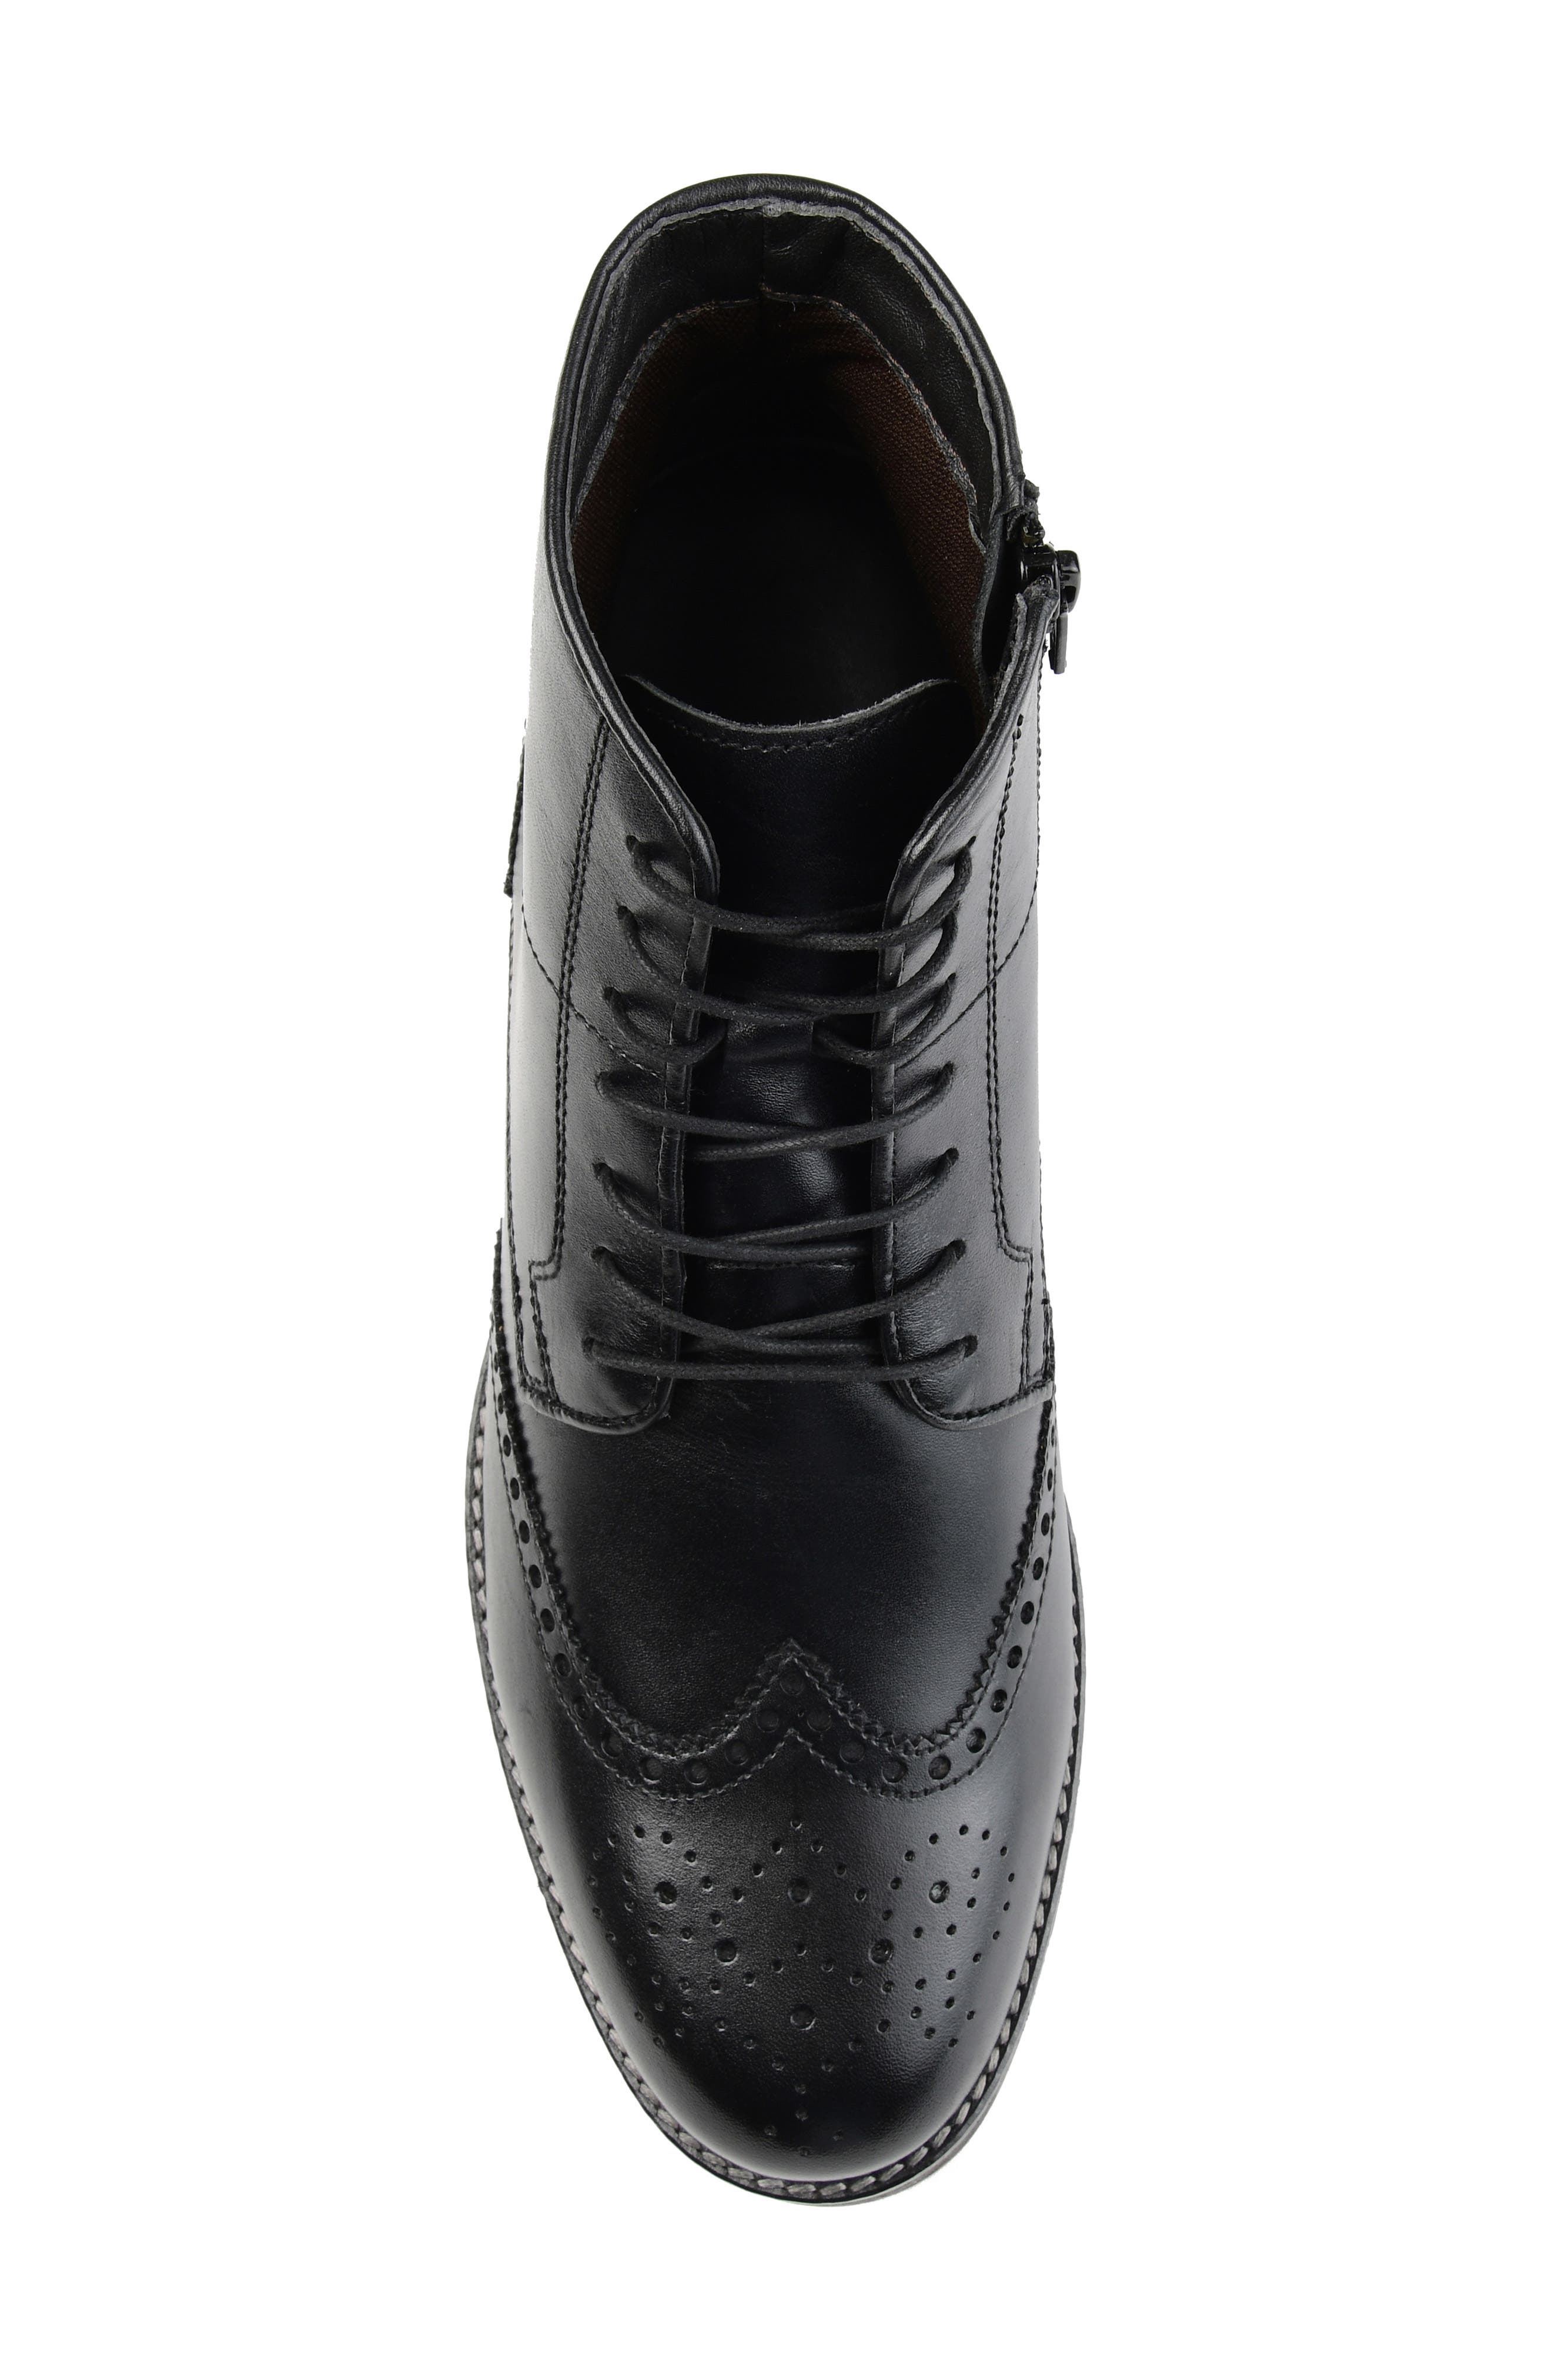 THOMAS AND VINE, Ryker Wingtip Boot, Alternate thumbnail 5, color, BLACK LEATHER